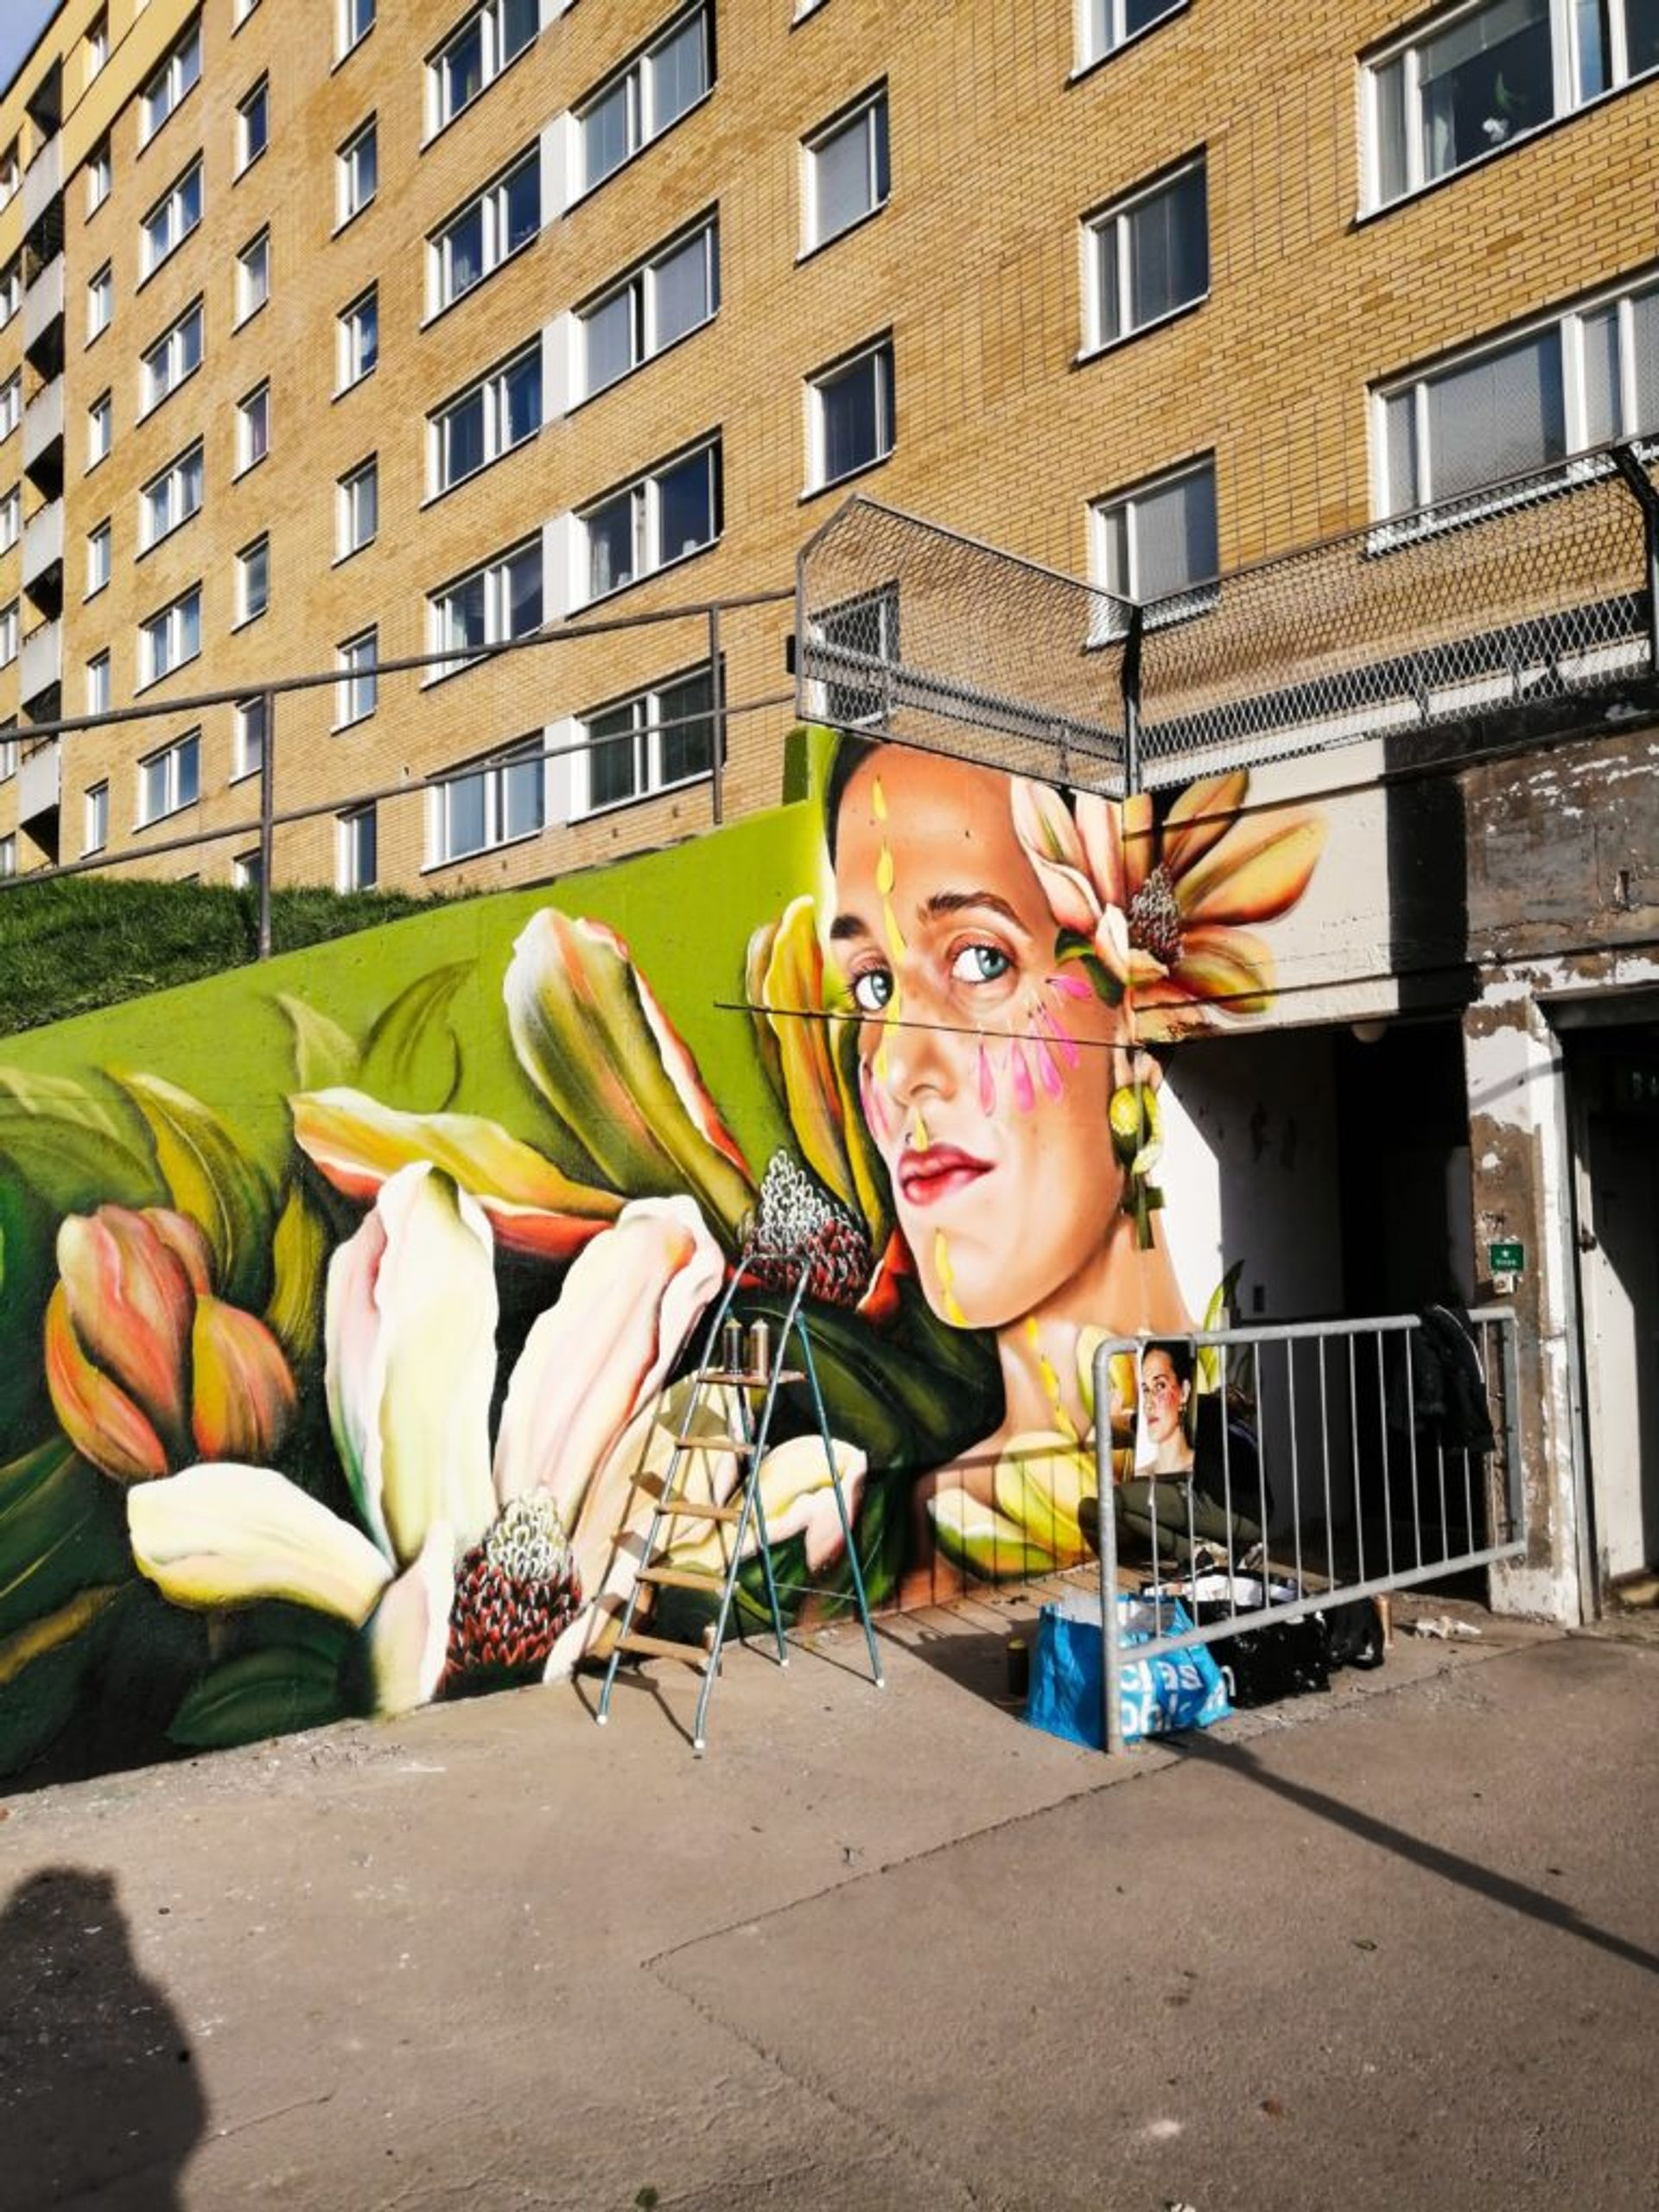 Photorealistic portrait of woman surrounded by flowers on a concrete wall.